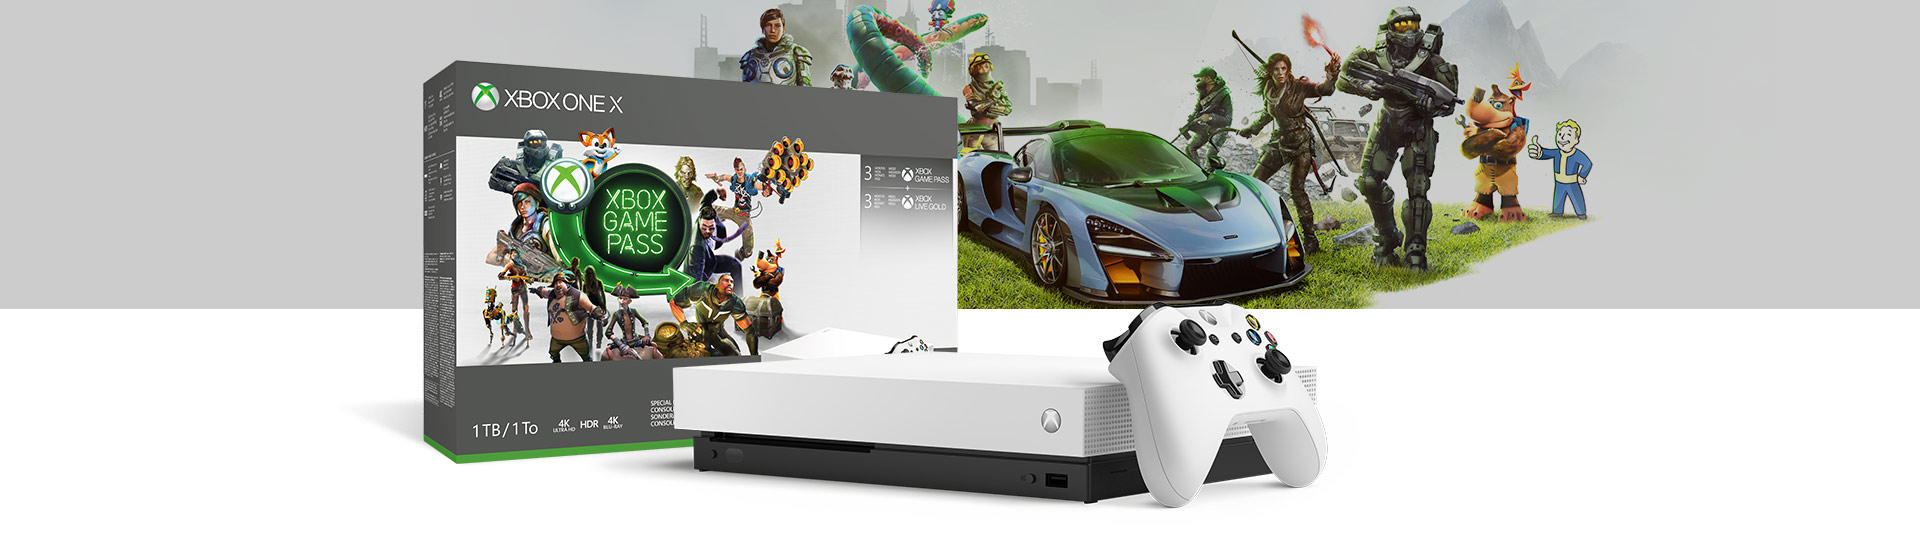 Front view of Xbox One X Robot White Special Edition Starter Bundle 1 terabyte with product box